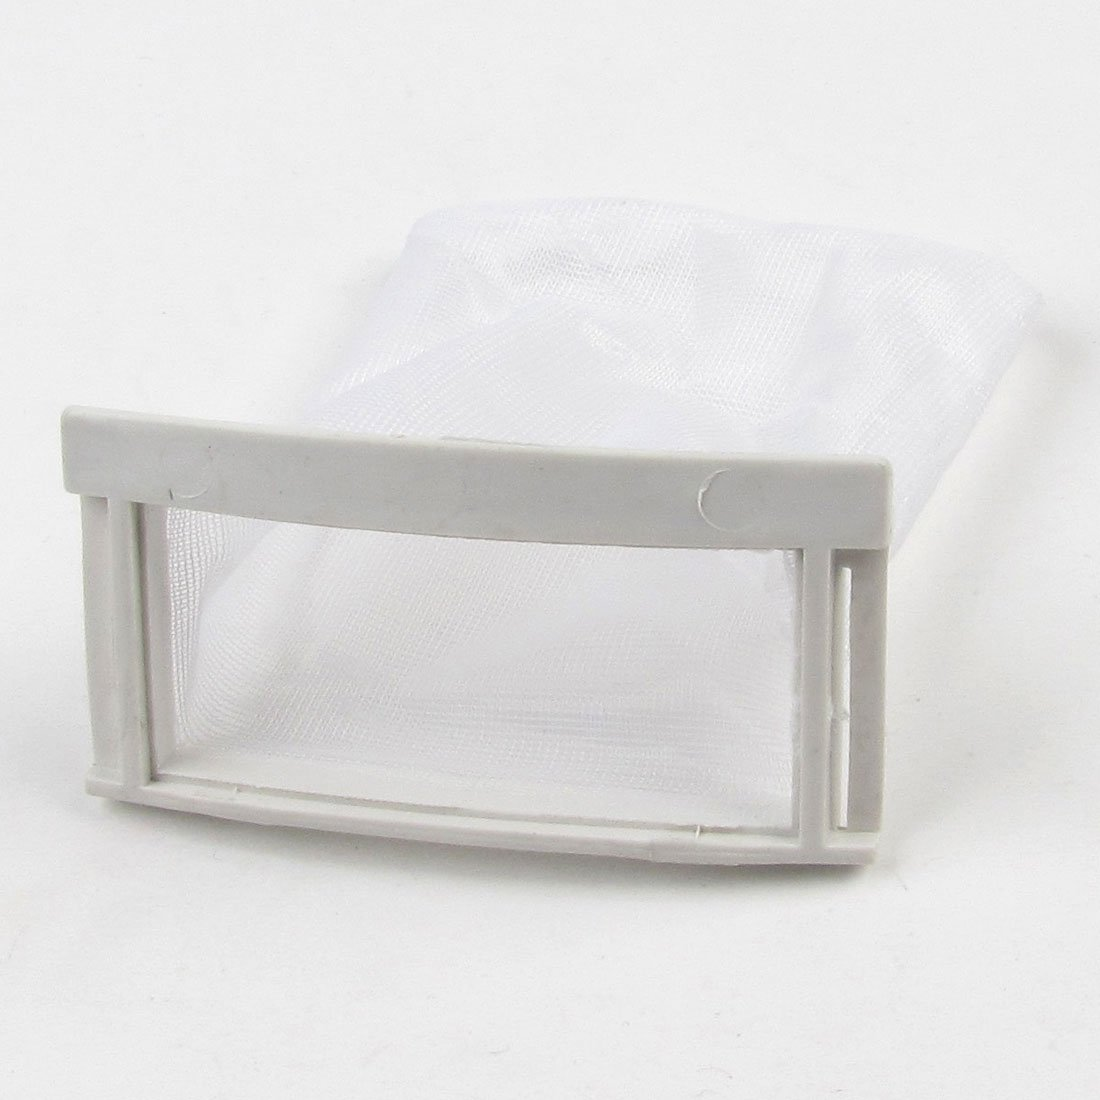 uxcell Nylon Waste Holder Mesh Filter Bag for Sanyo Washing Machine